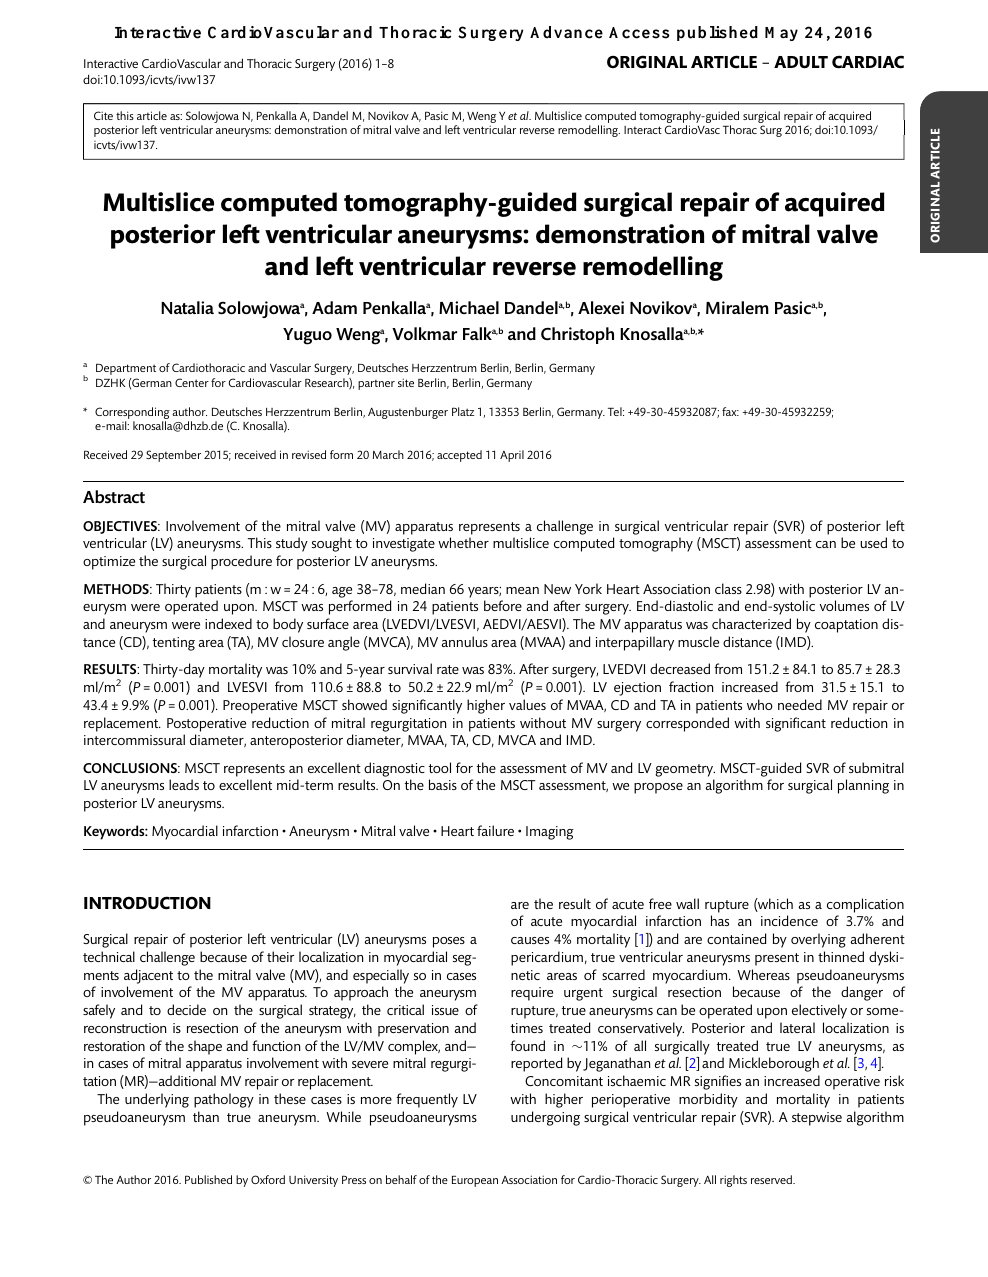 Multislice computed tomography-guided surgical repair of